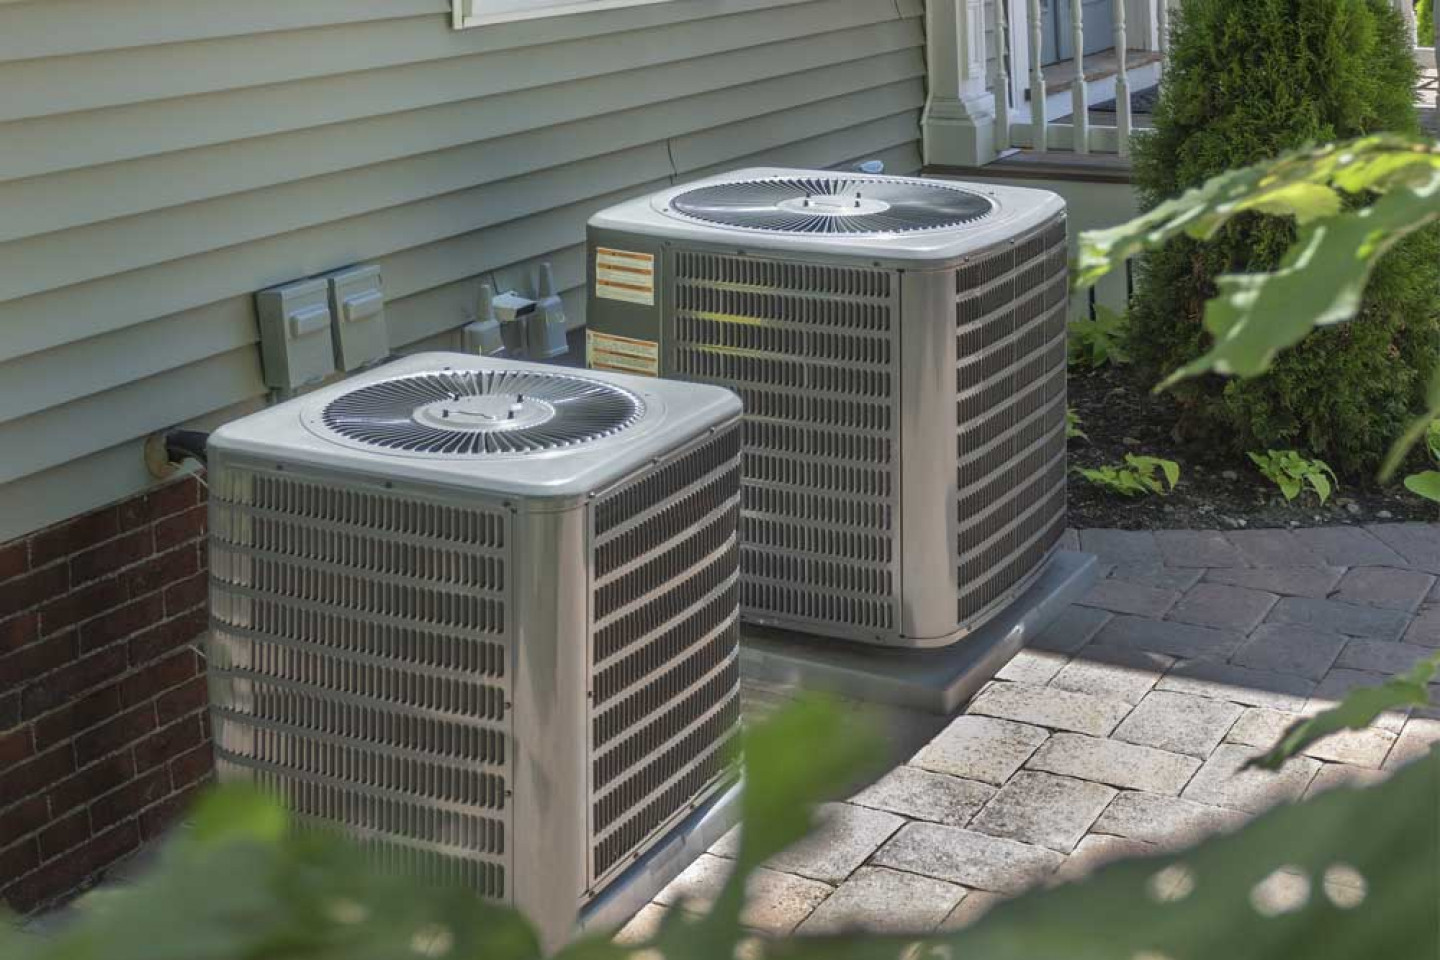 We offer air conditioning installation services to keep you cool in Owensboro, KY and surrounding areas